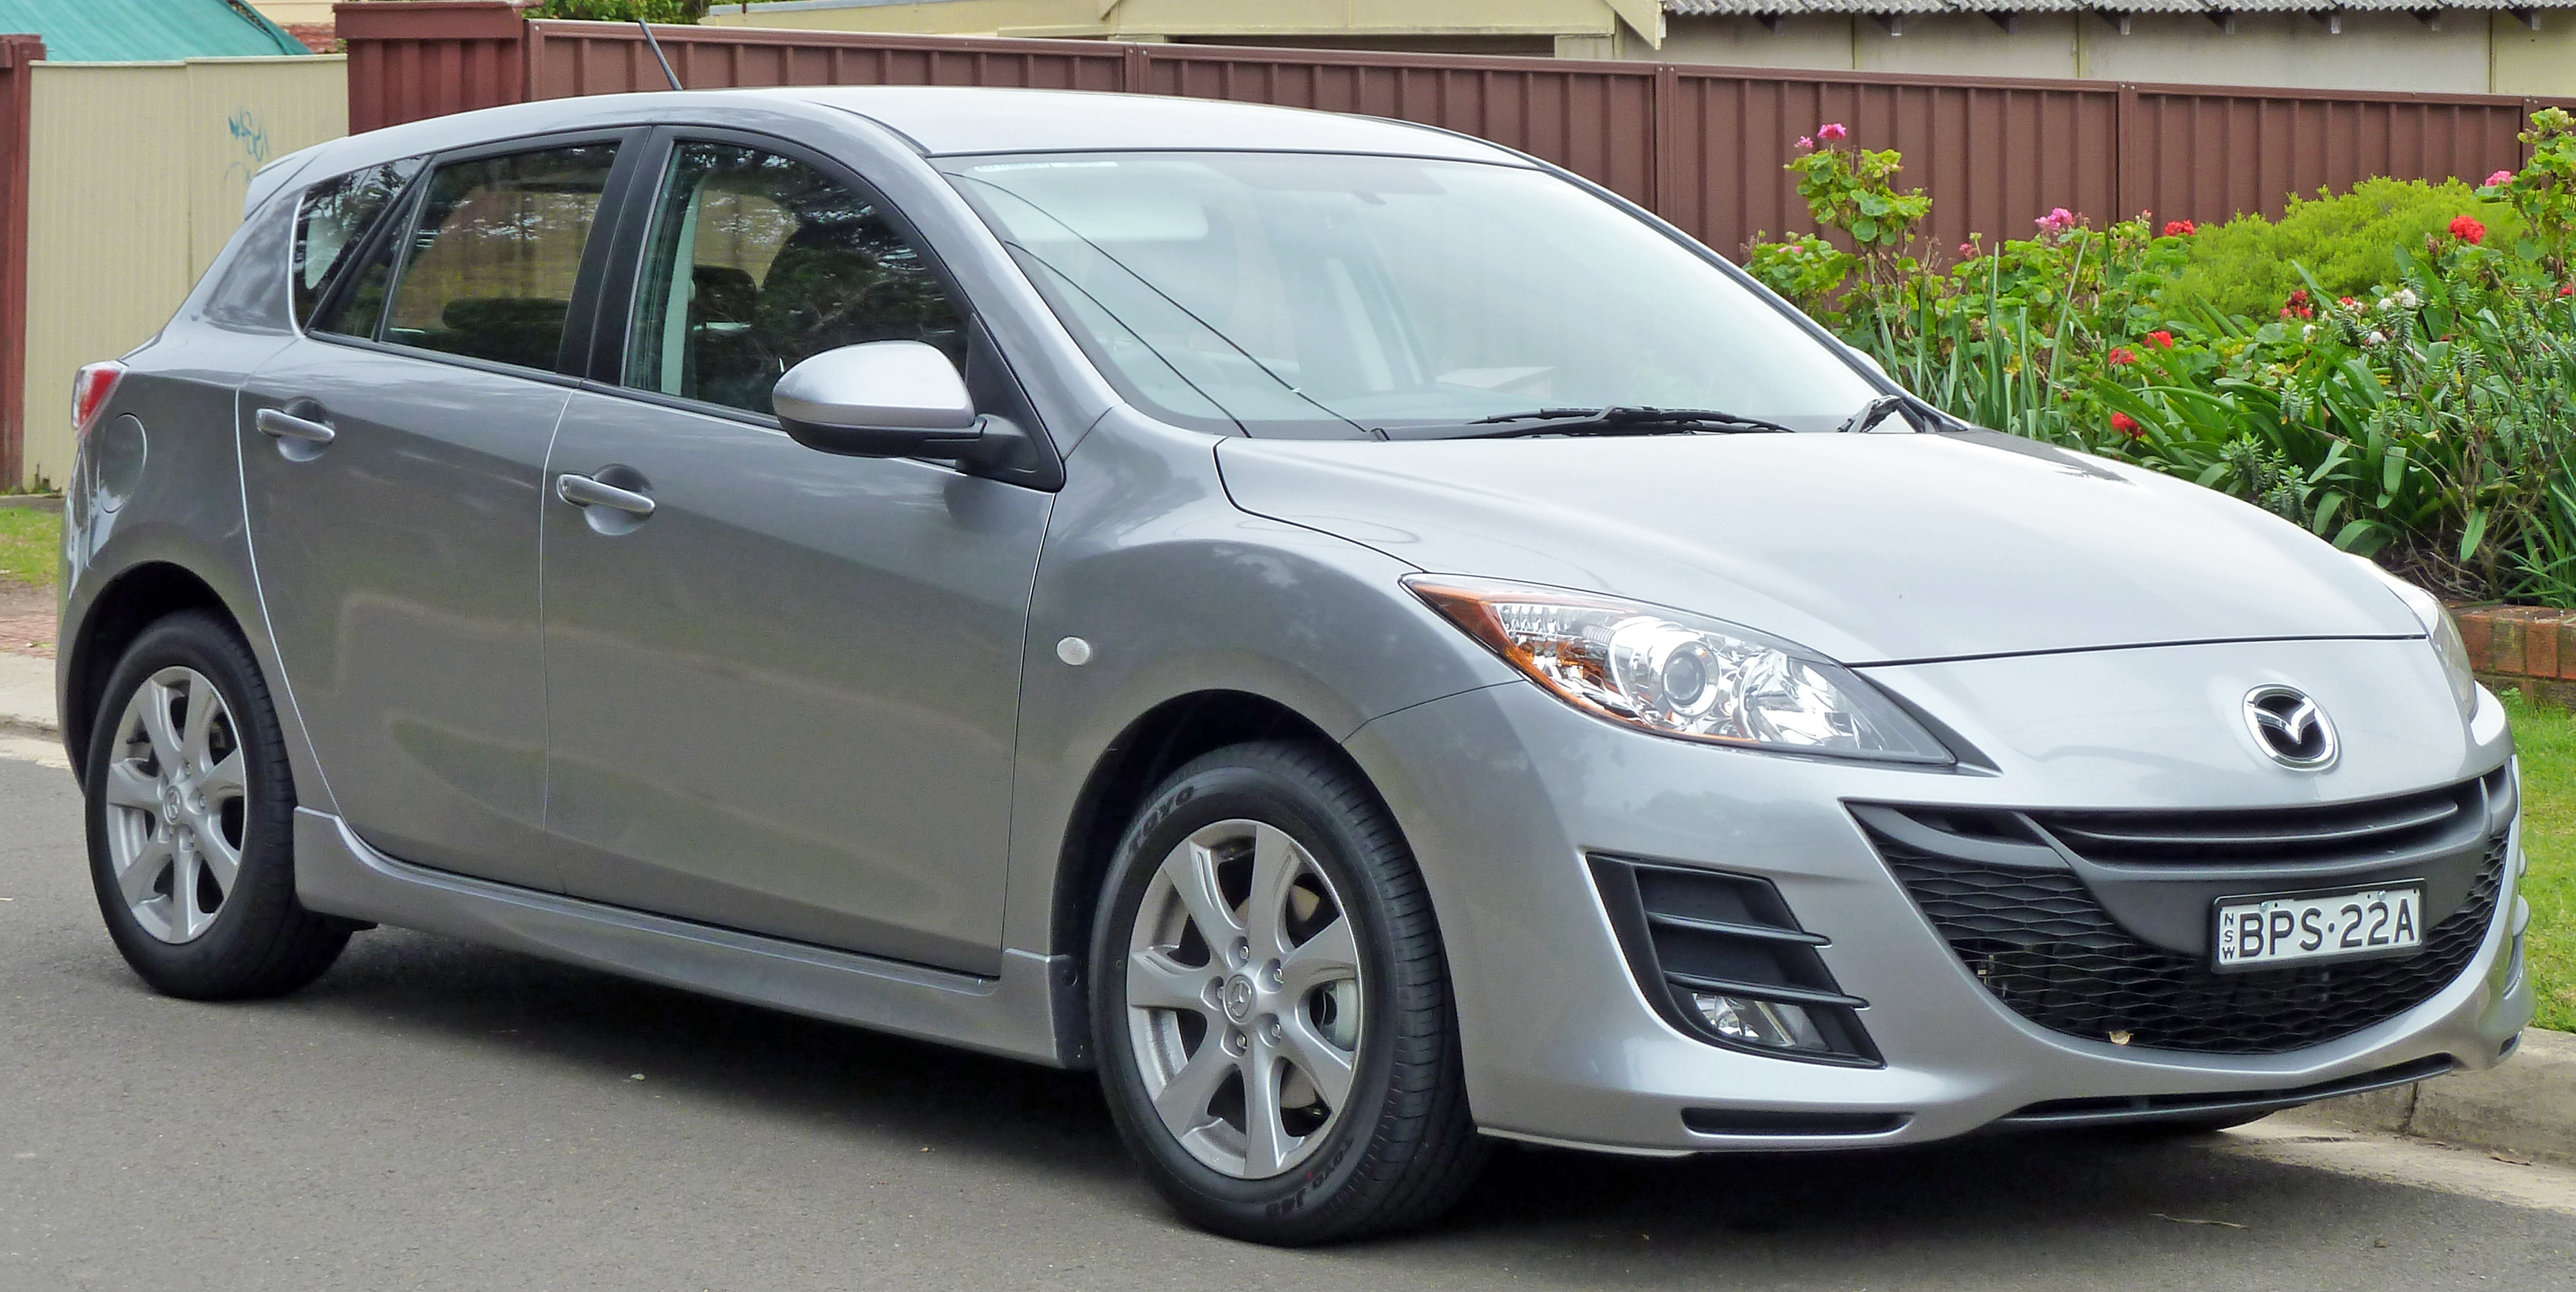 2010 Mazda MAZDA3 s Sport Hatchback For Sale  CarGurus